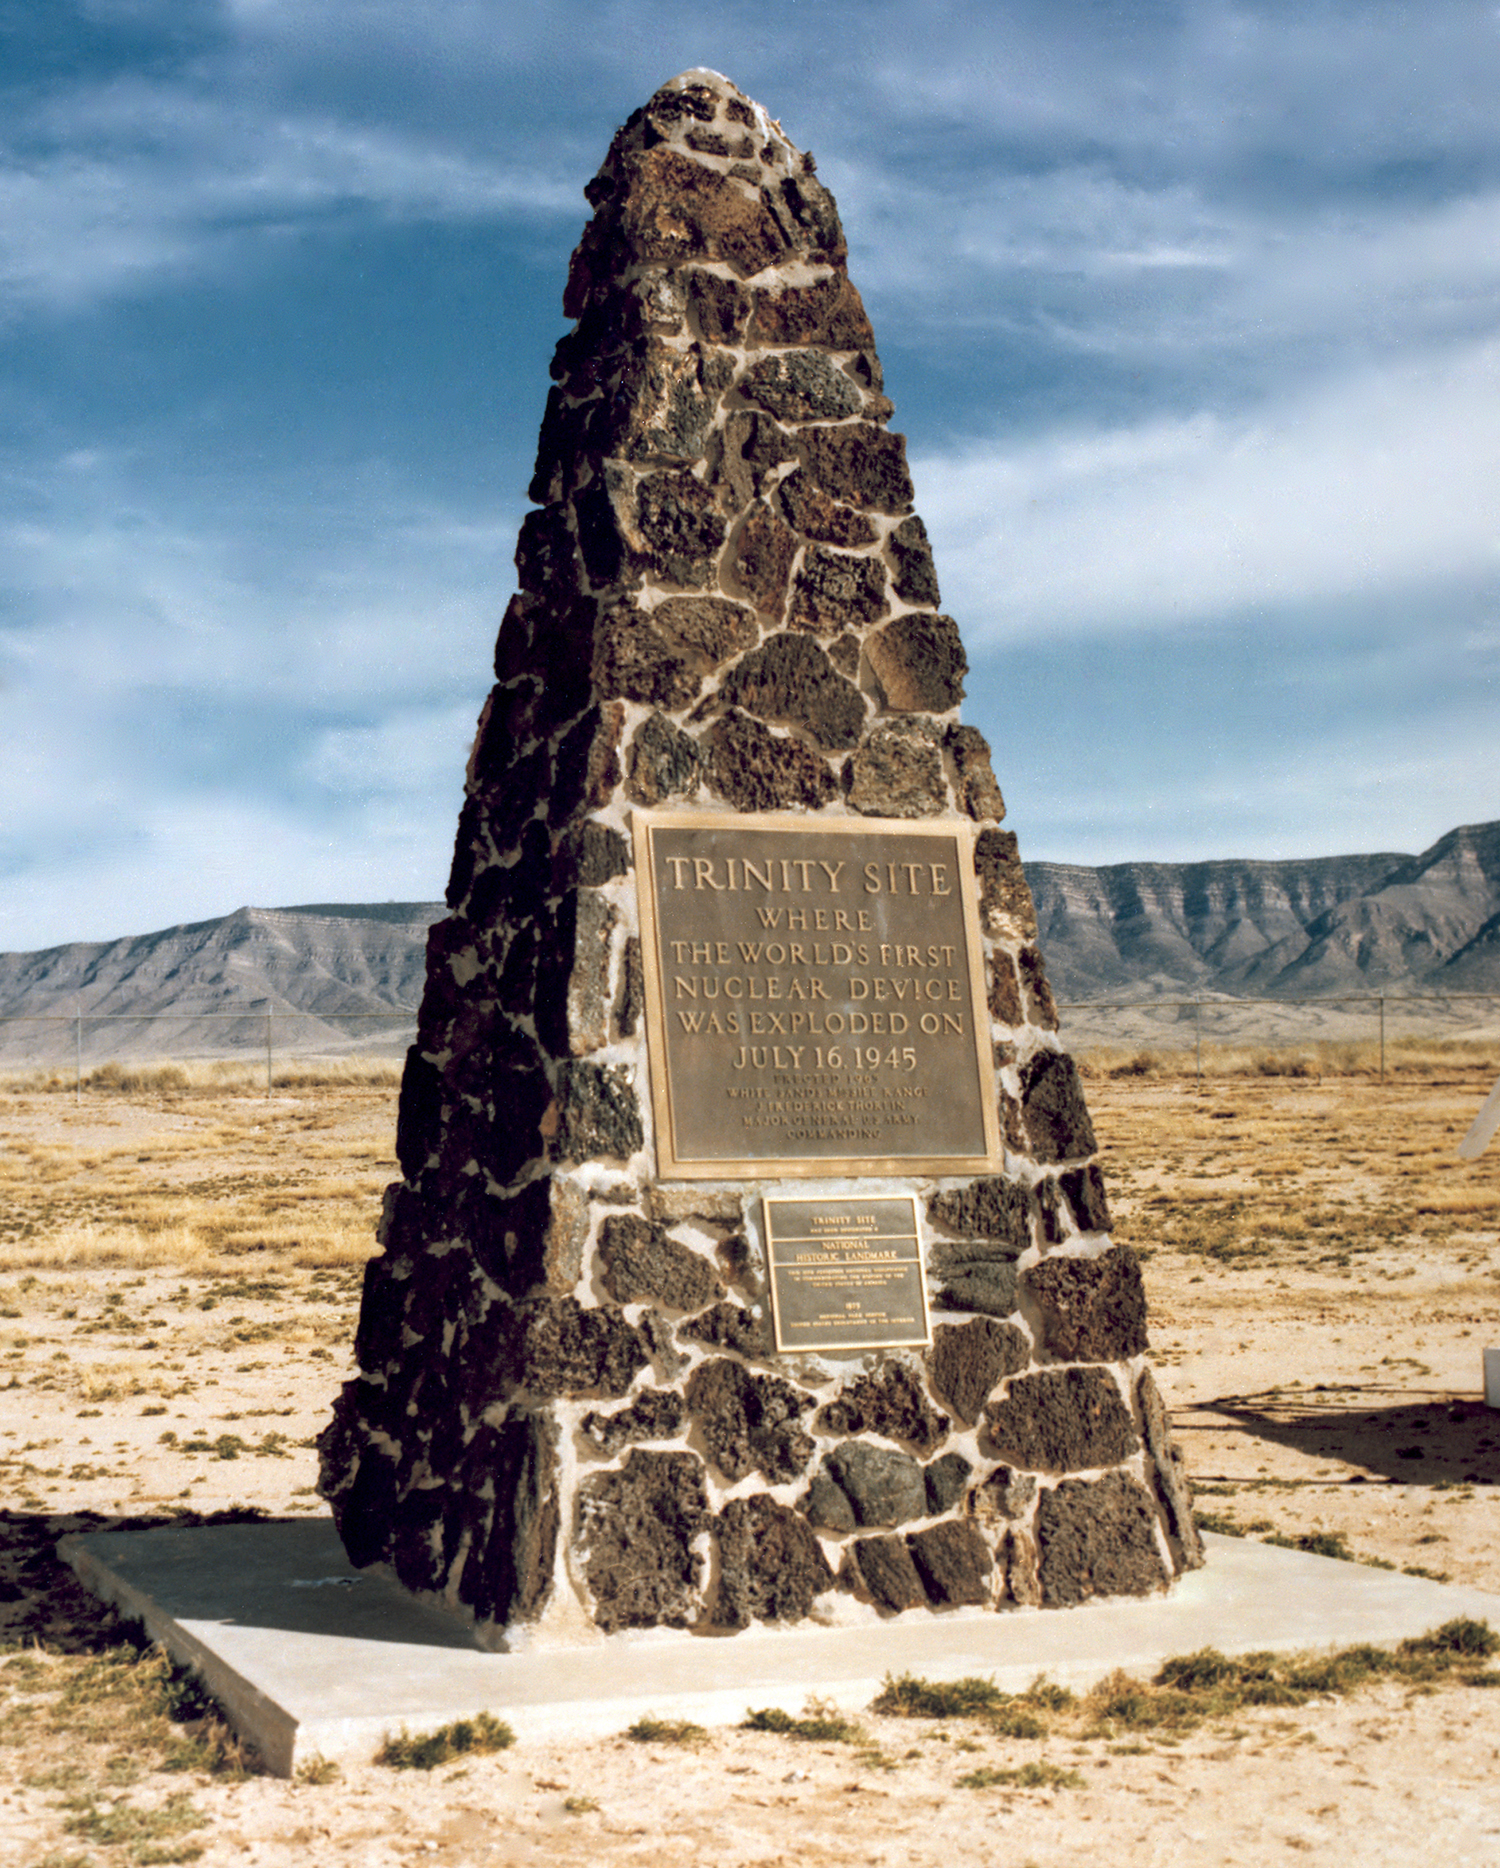 The Trinity Site monument